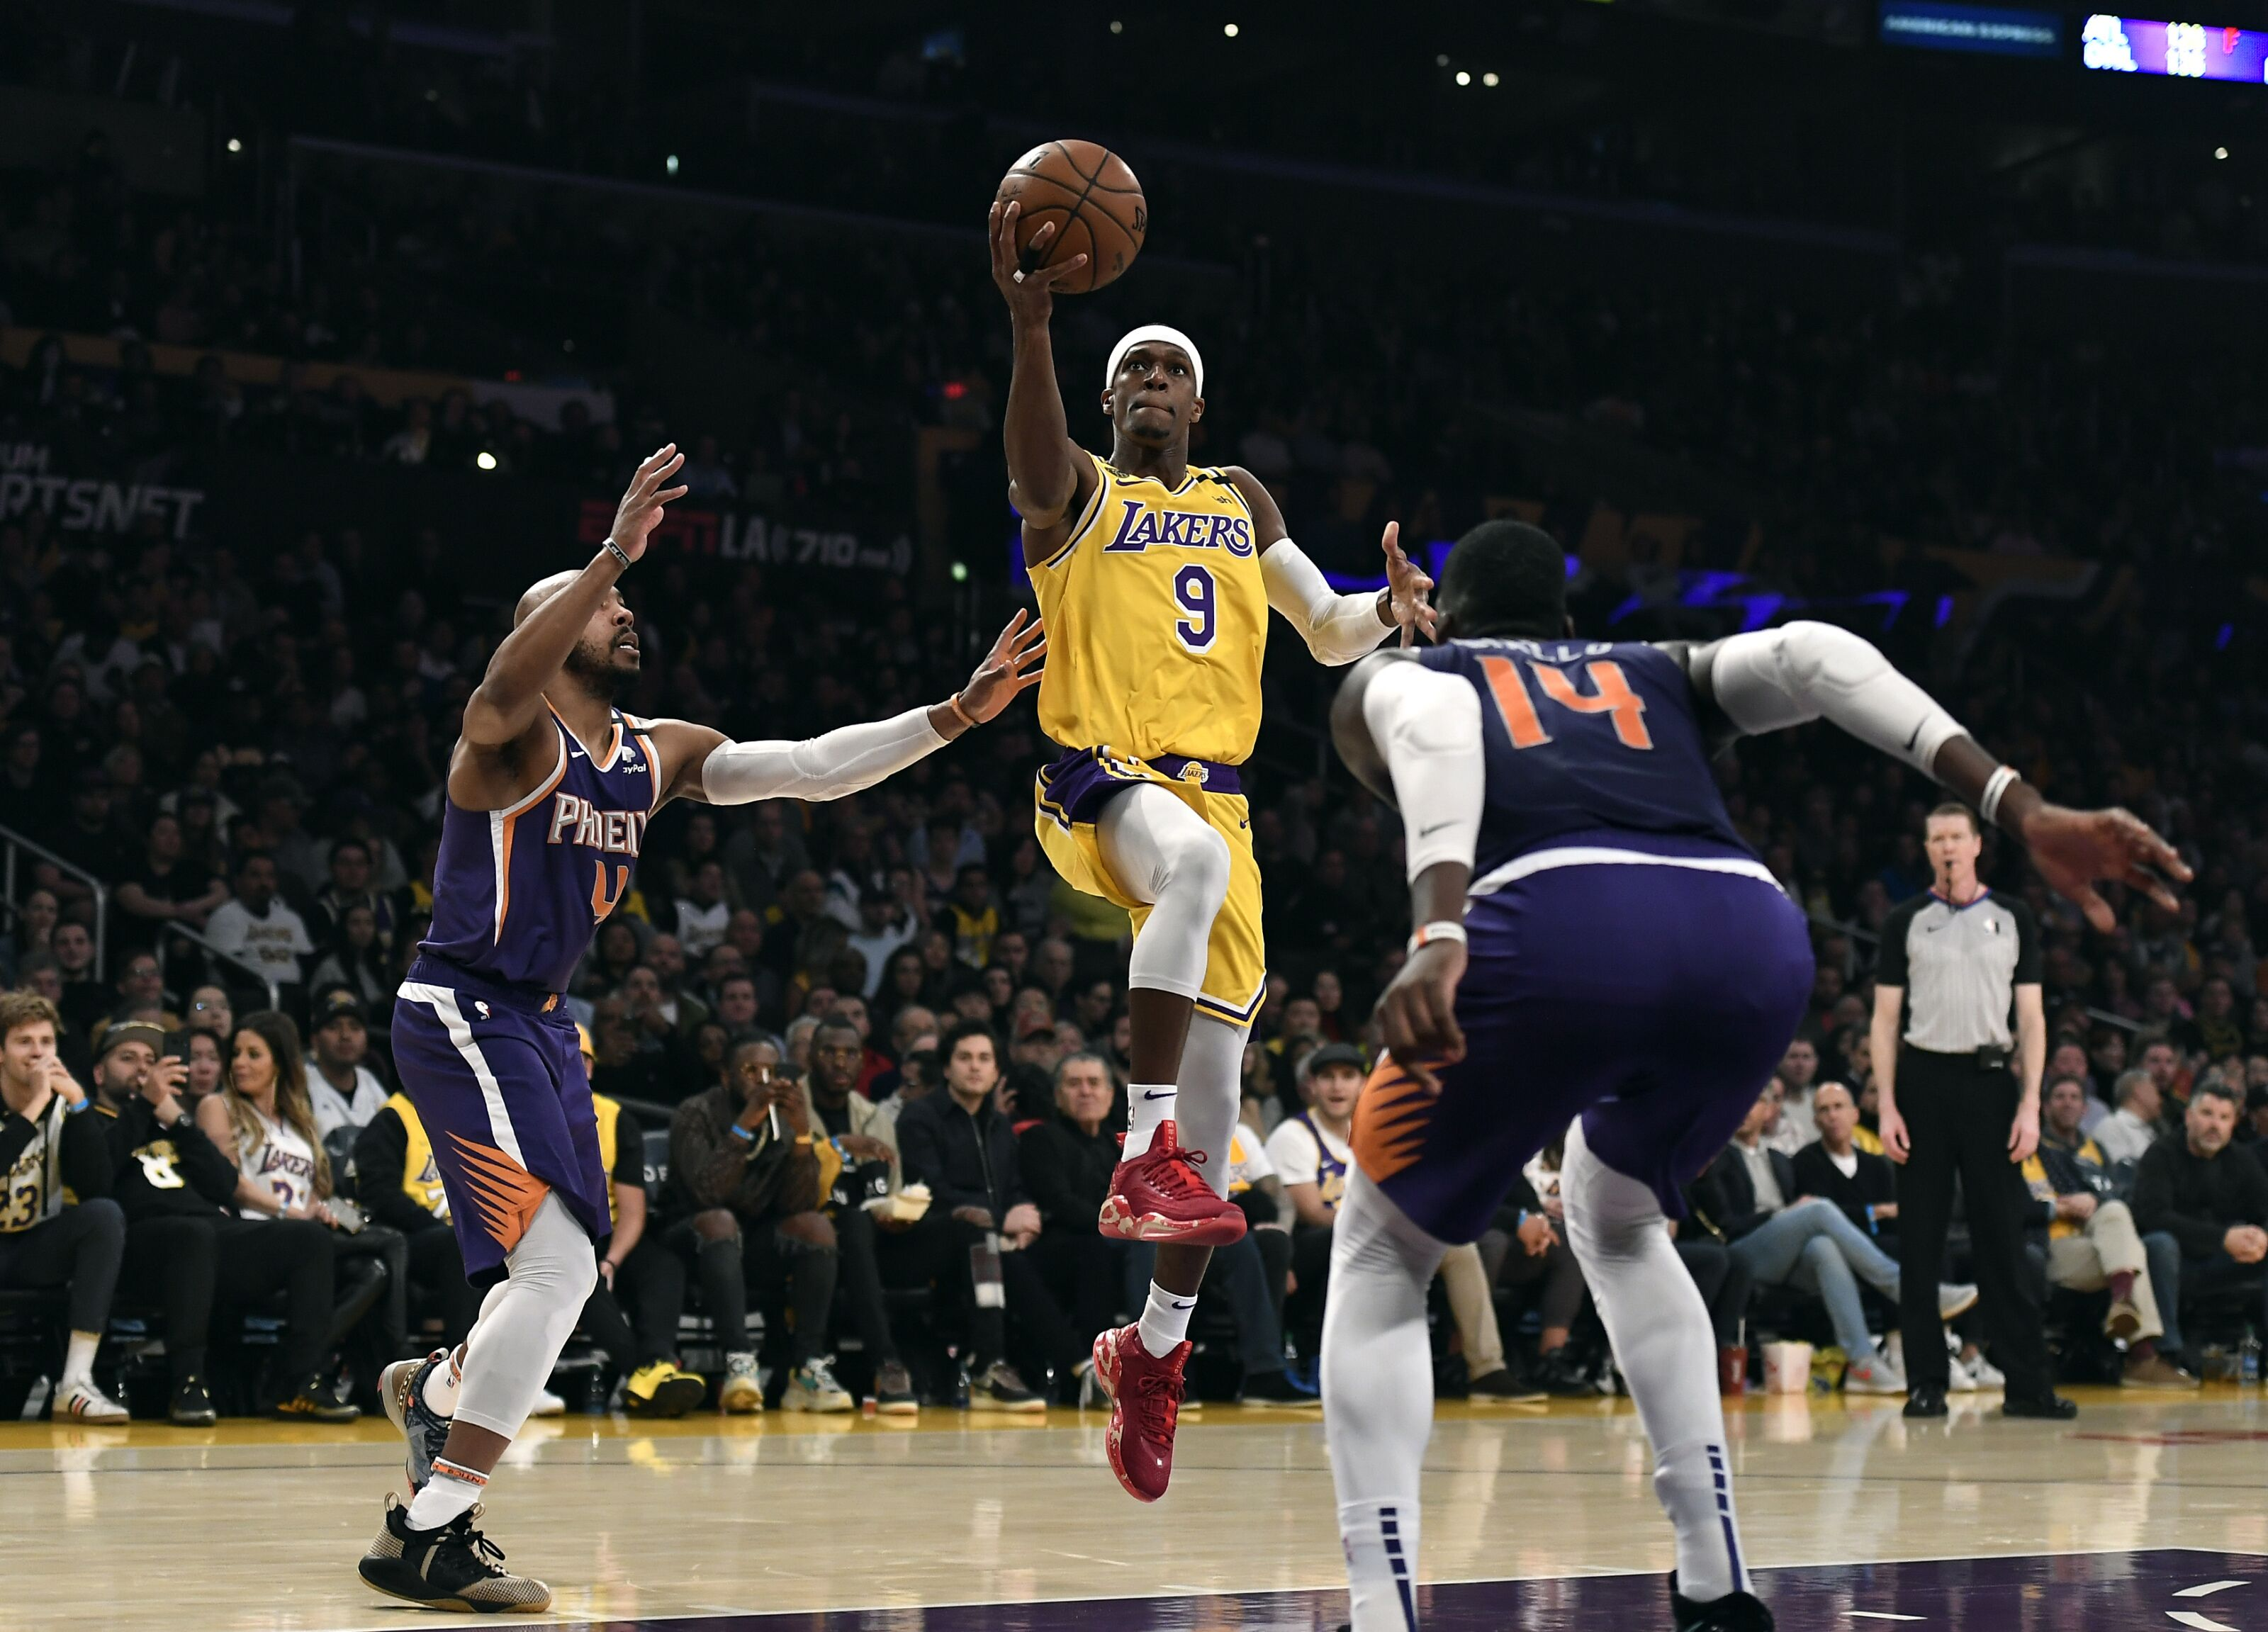 Los Angeles Lakers: Rajon Rondo's potential future with buyout options